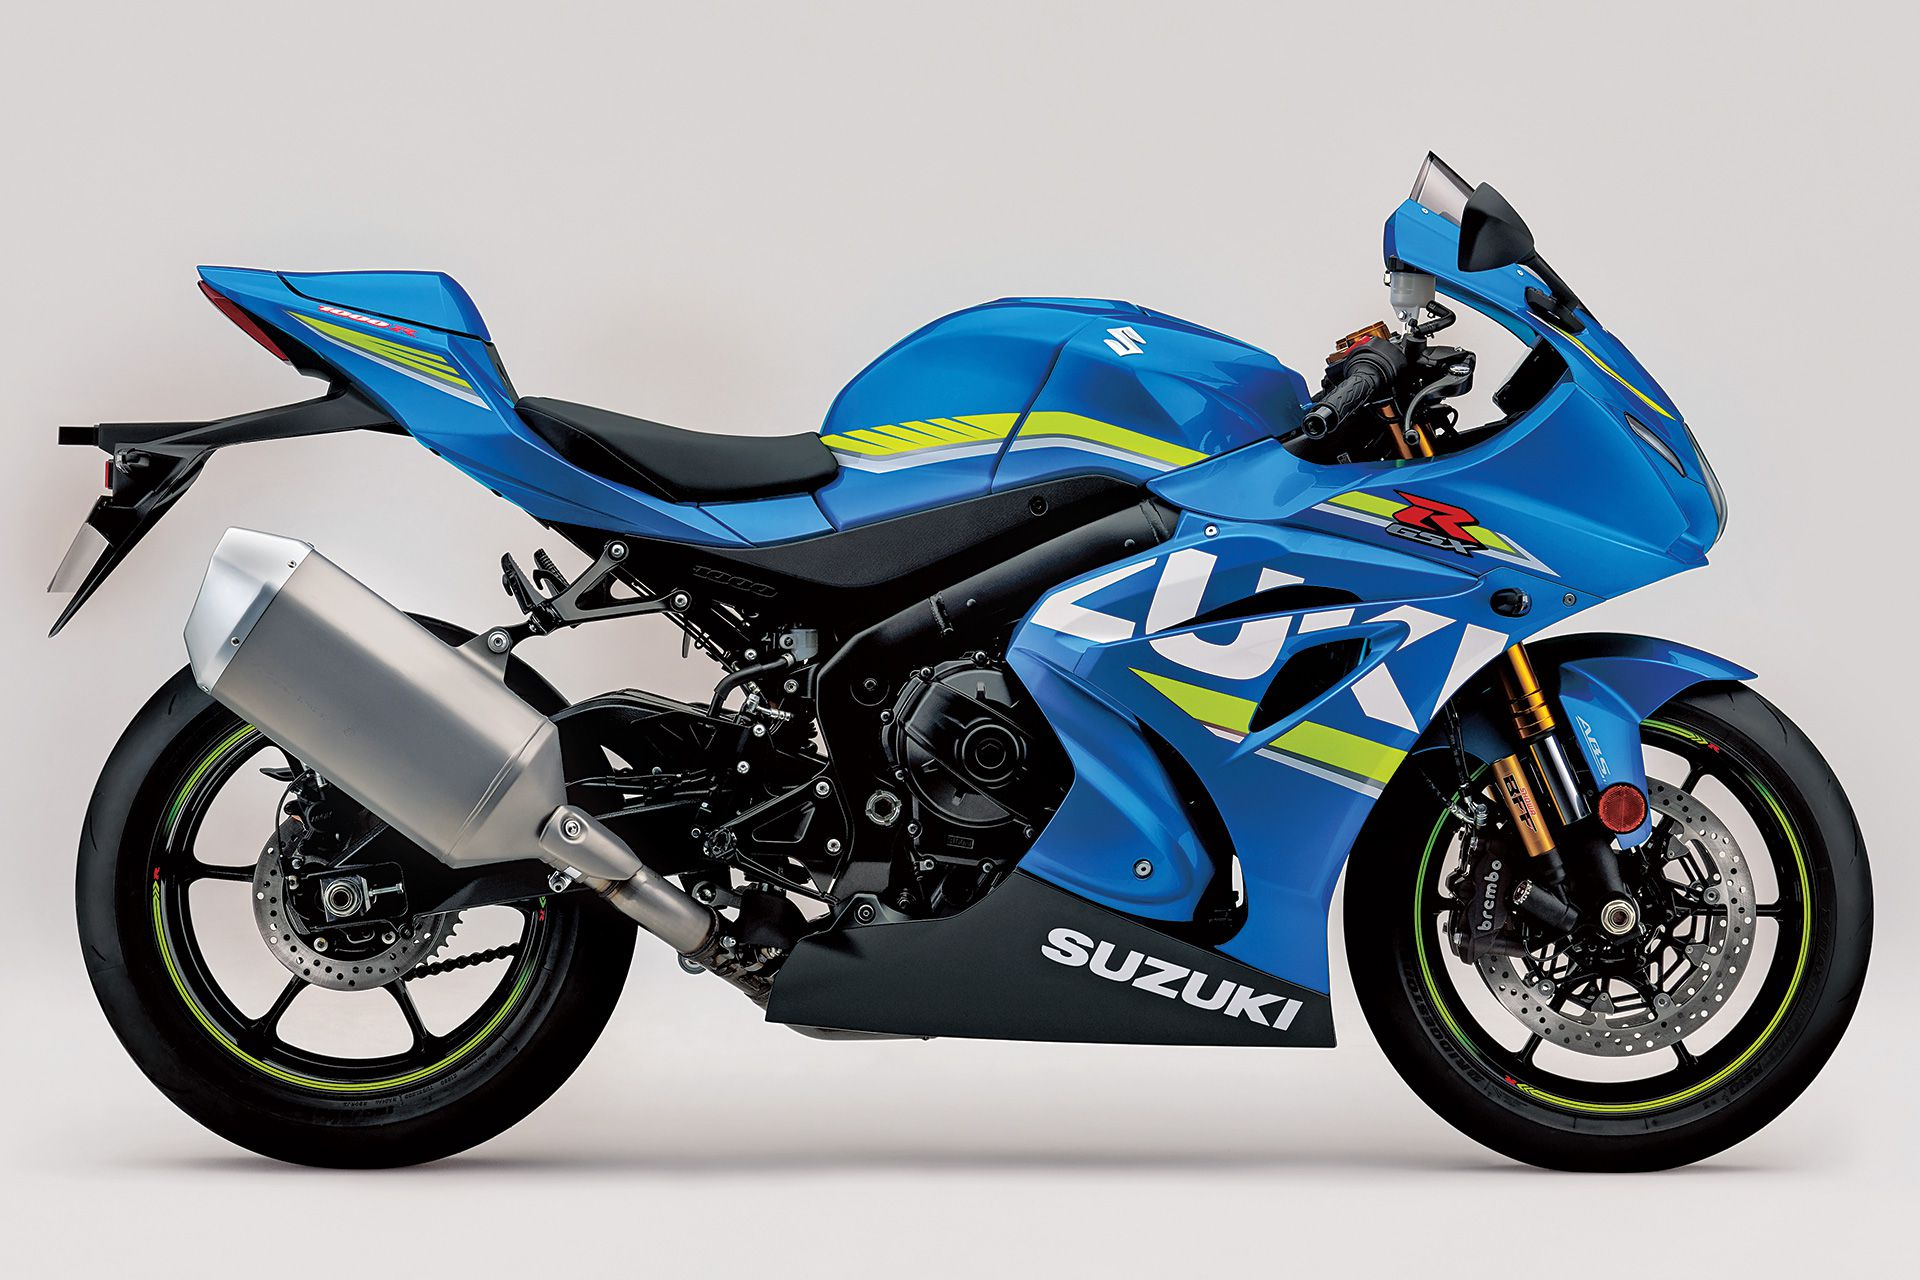 2017 Suzuki GSX-R1000 and GSX-R1000R Superbike - TECH PREVIEW